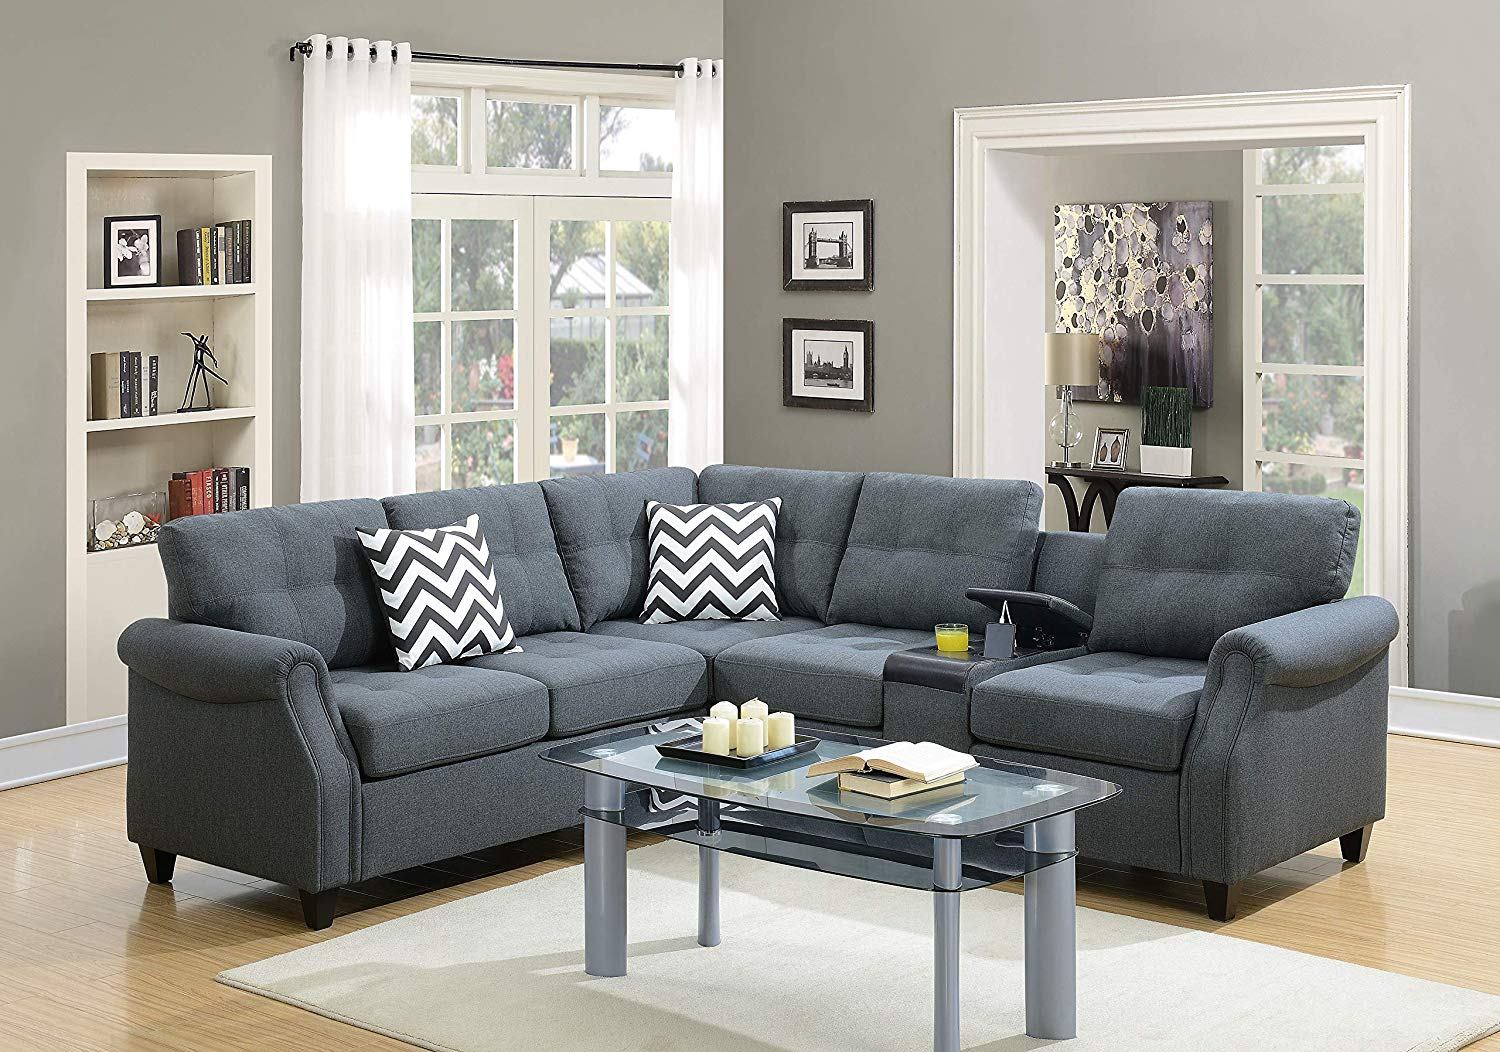 Cheap Modular Lounges Cheap Modular Sofa Find Modular Sofa Deals On Line At Alibaba